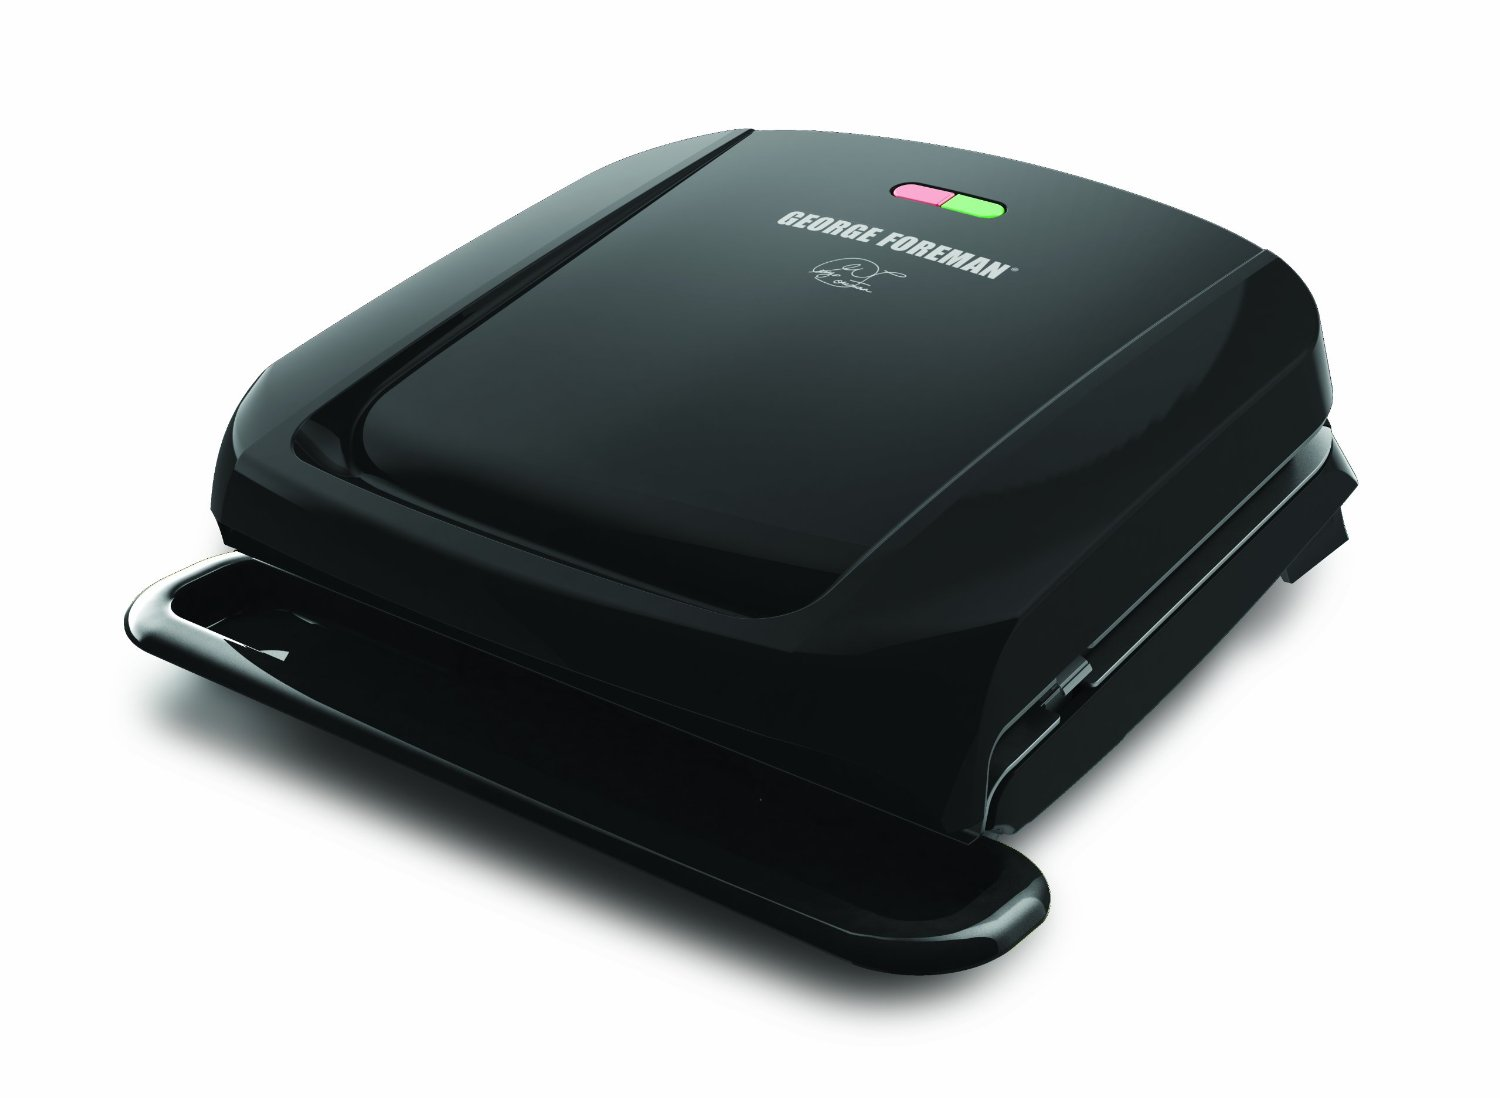 George foreman 4 serving classic plate grill a must have on hand